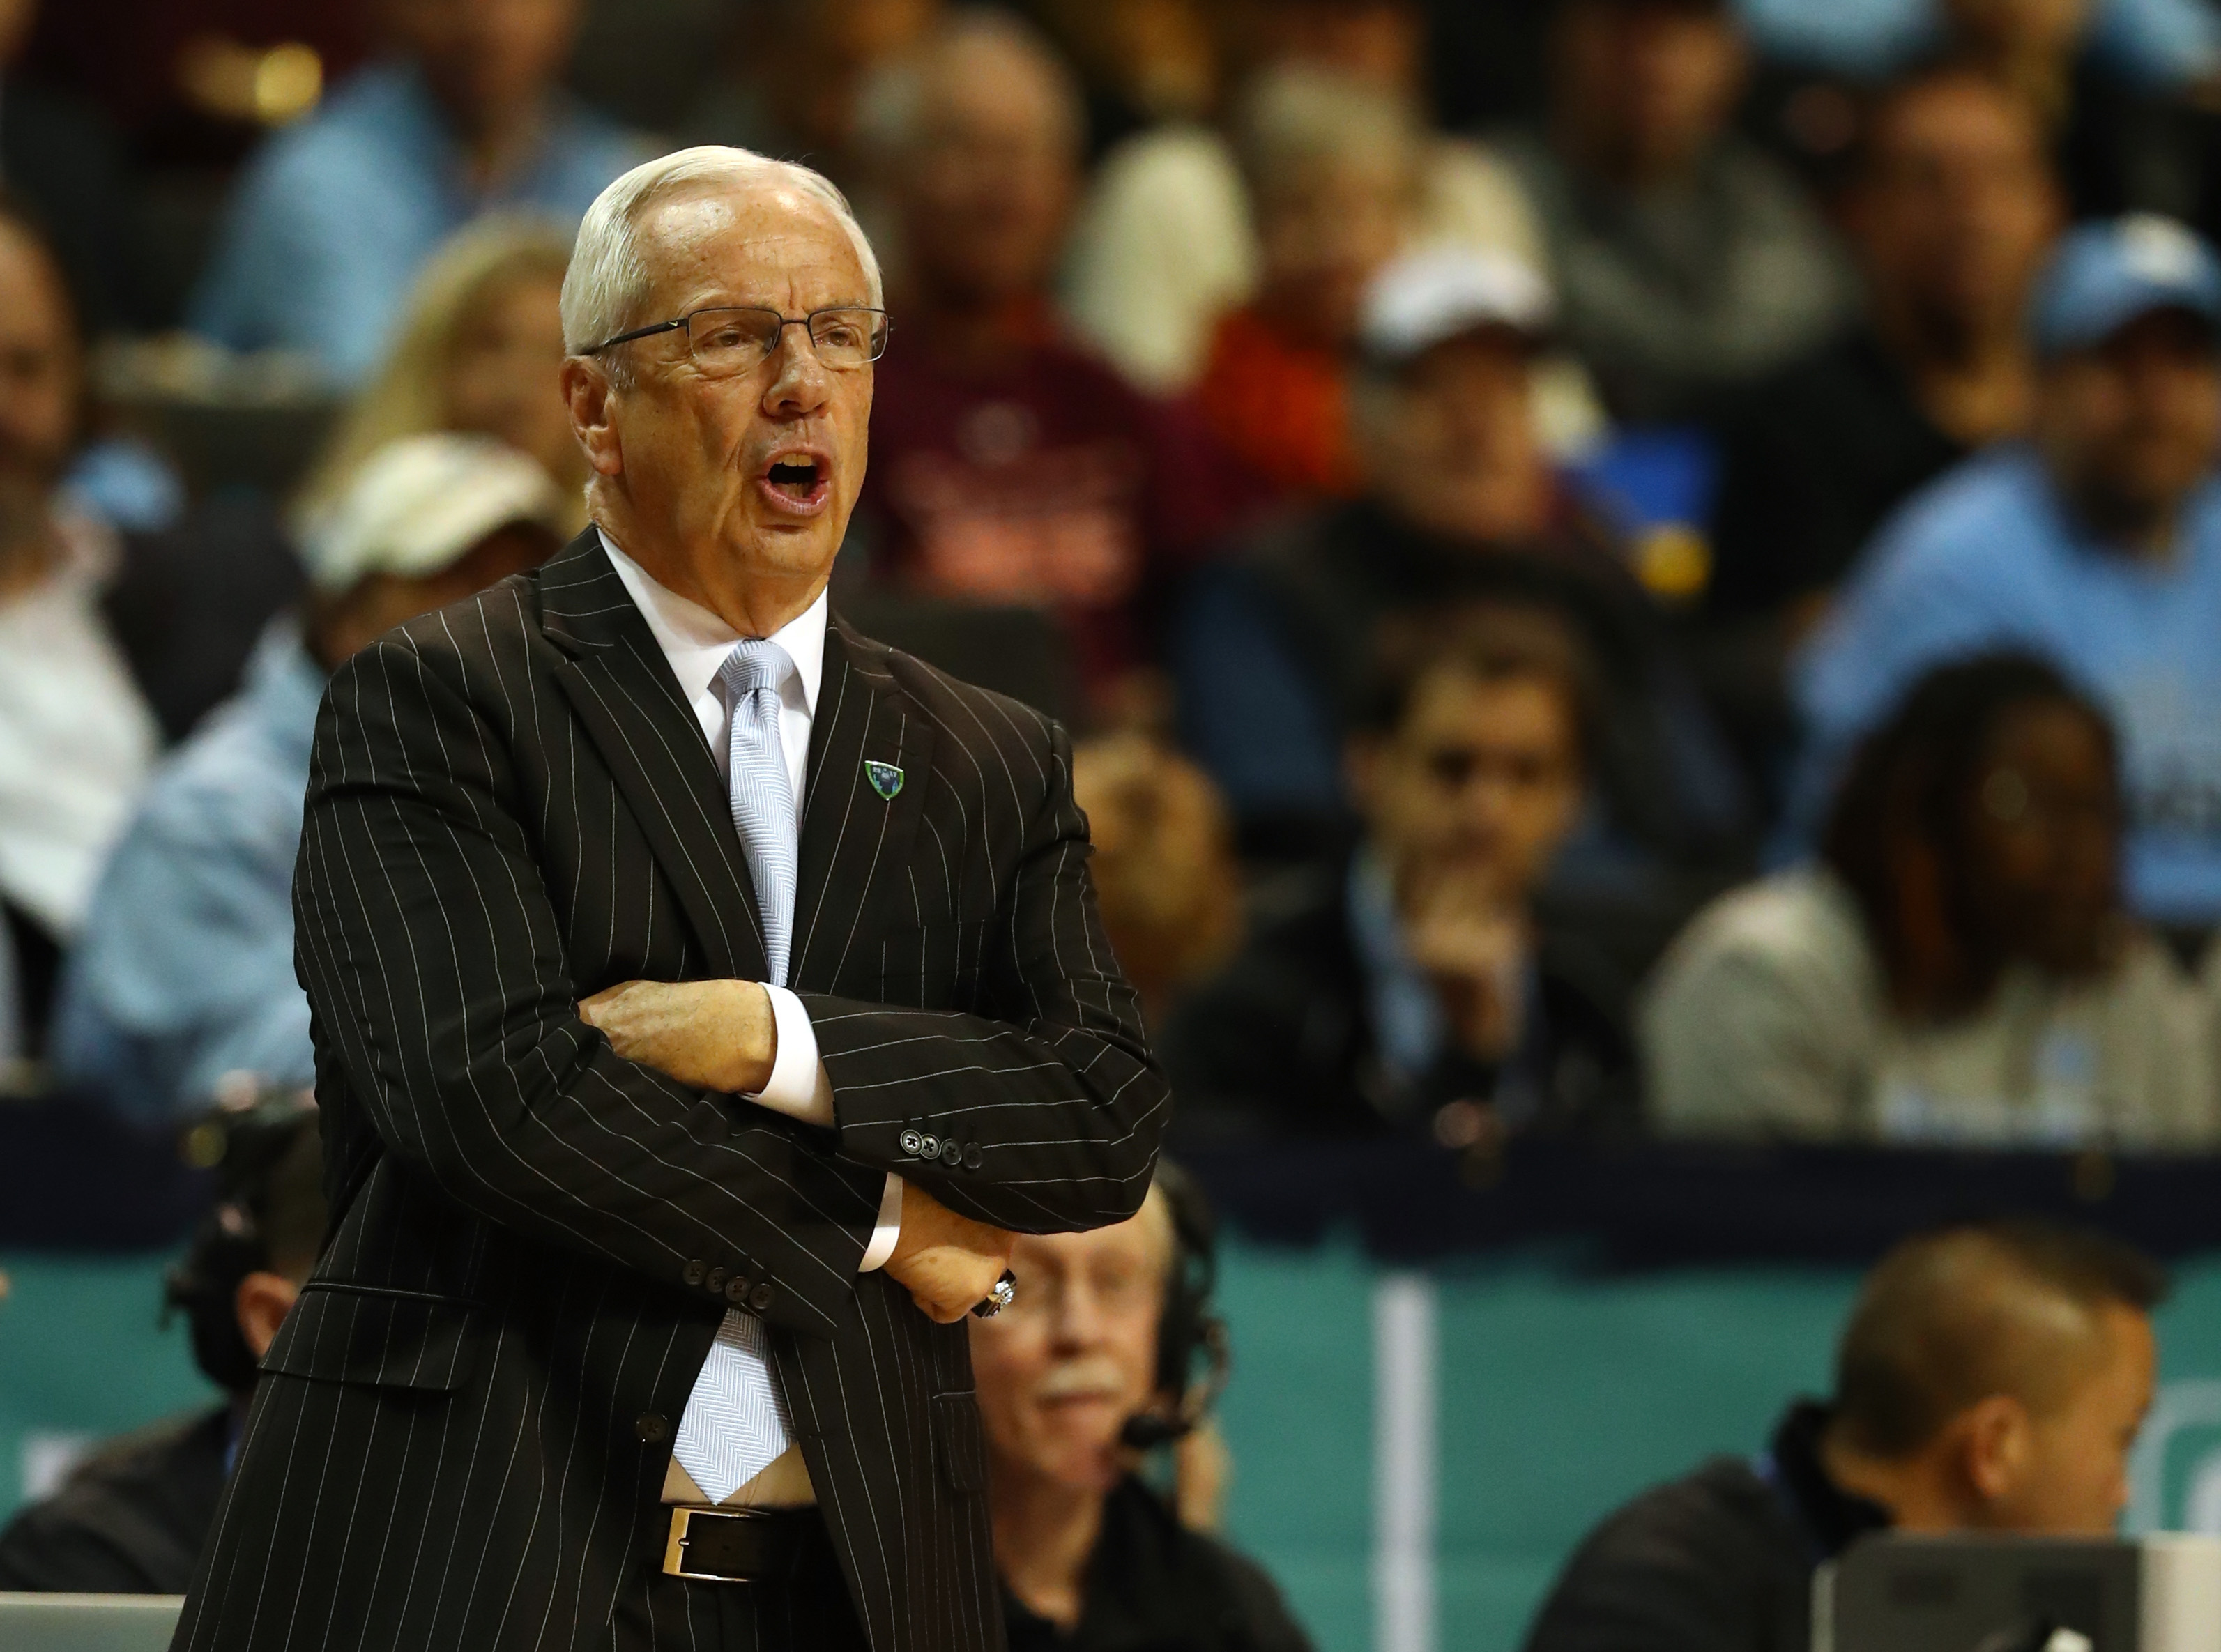 Head coach Roy Williams of the North Carolina Tar Heels in action against the Miami (Fl) Hurricanes during the Quarterfinals of the ACC Basketball Tournament  at the Barclays Center on March 9, 2017 in New York City.